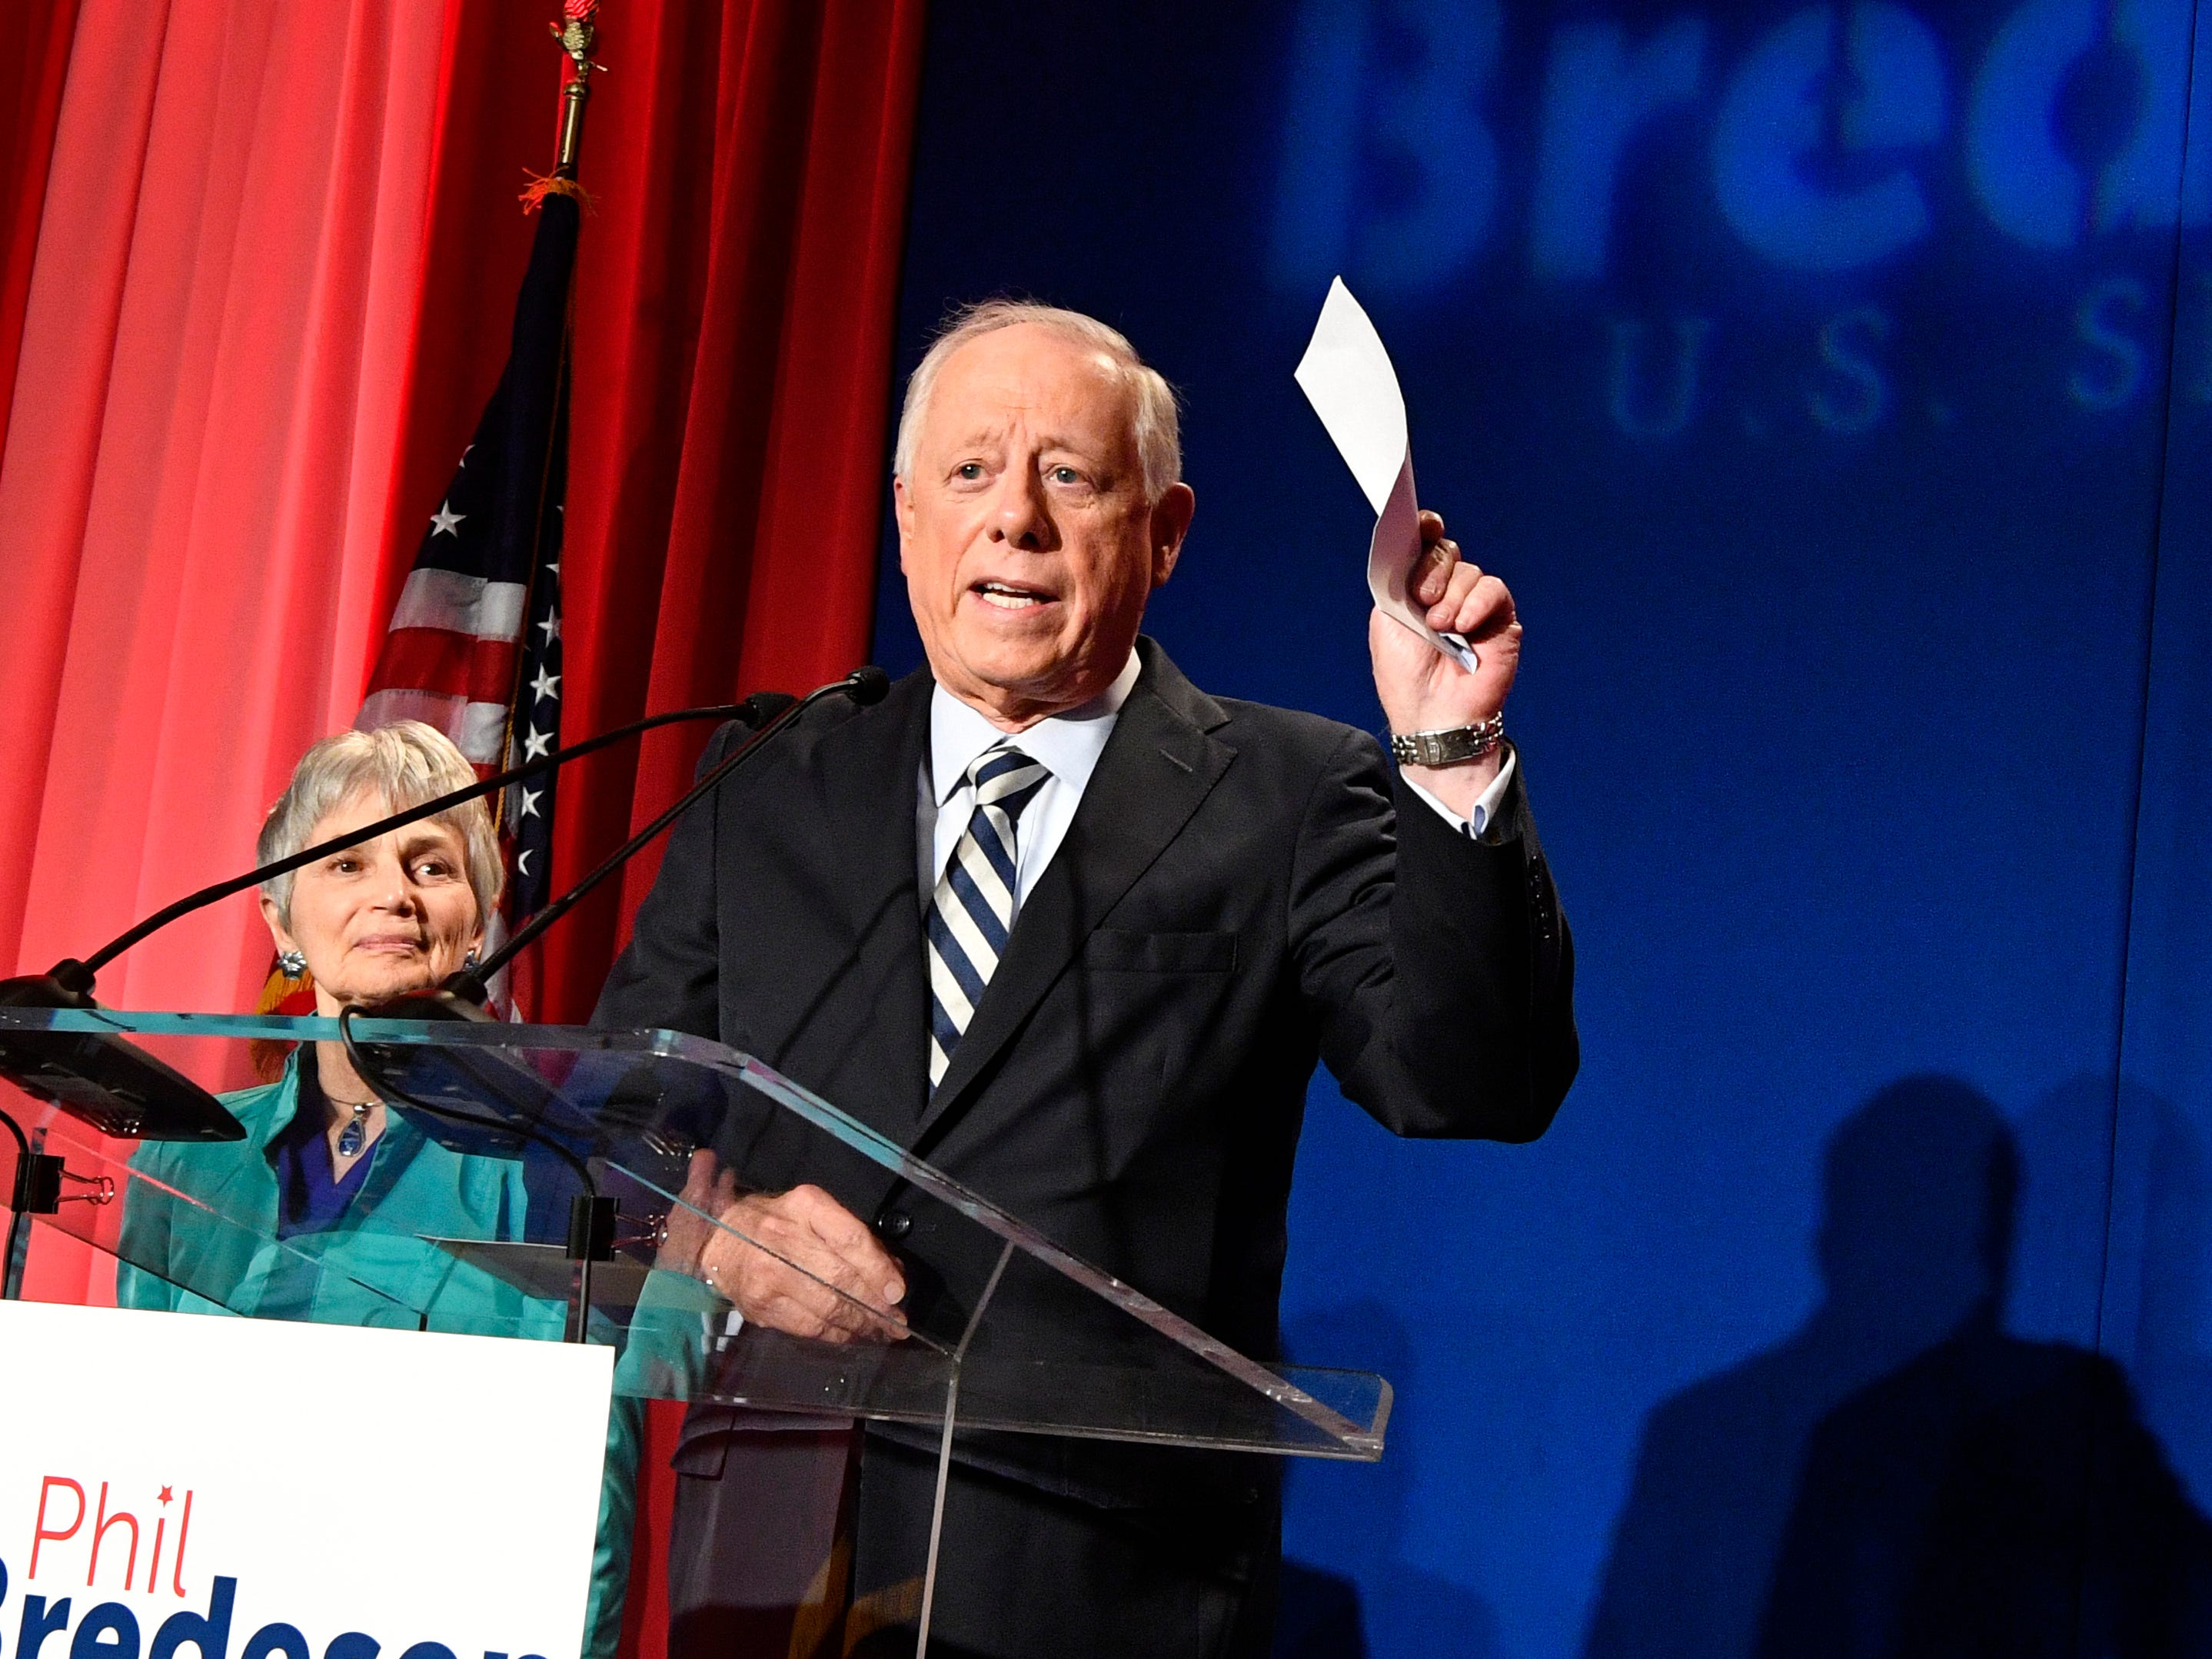 Democratic U.S. Senate candidate Phil Bredesen gives a concession speech as his wife Andrea Conte stands beside him at his campaign watch party at the Hilton Hotel Tuesday Nov. 6, 2018, in Nashville, Tenn.